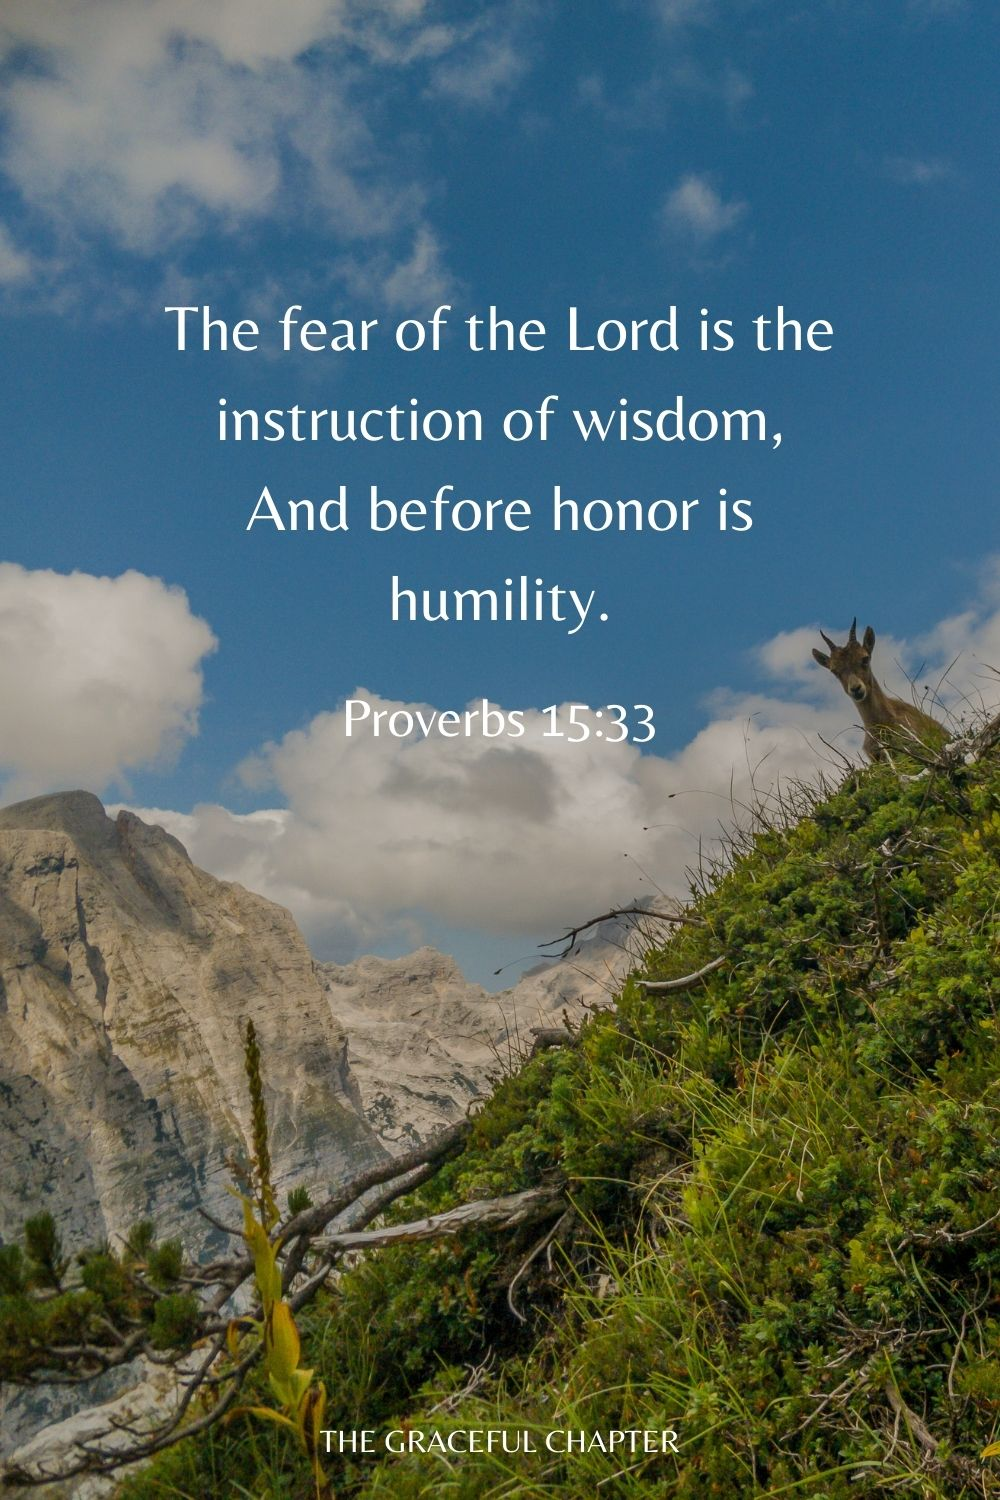 The fear of the Lord is the instruction of wisdom, And before honor is humility. Proverbs 15:33